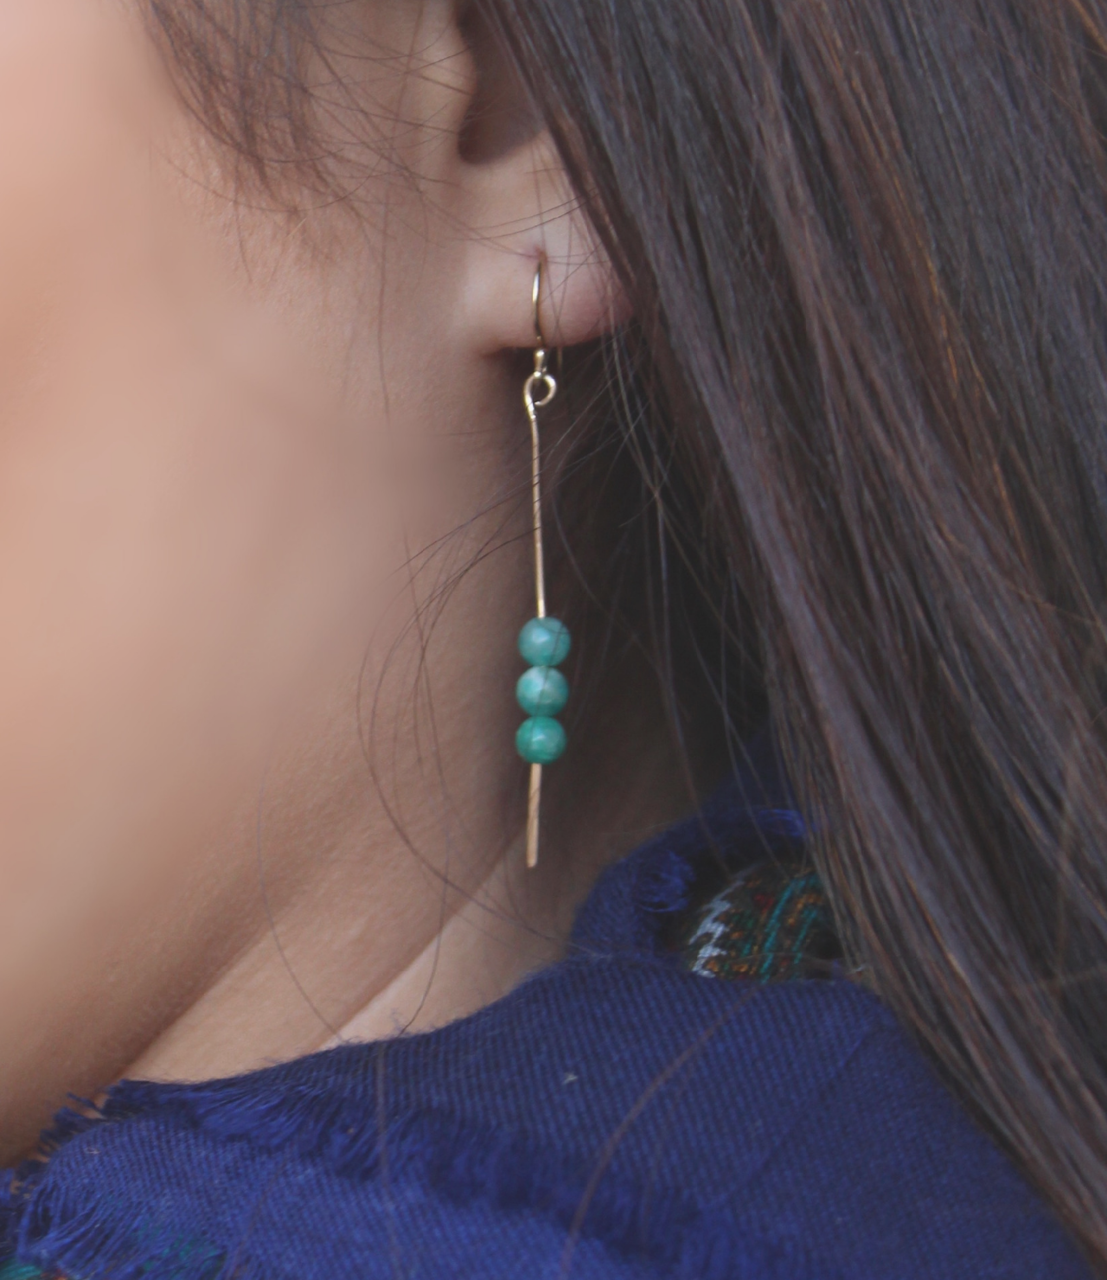 gold stick gemstone earrings on model ear with neck scarf